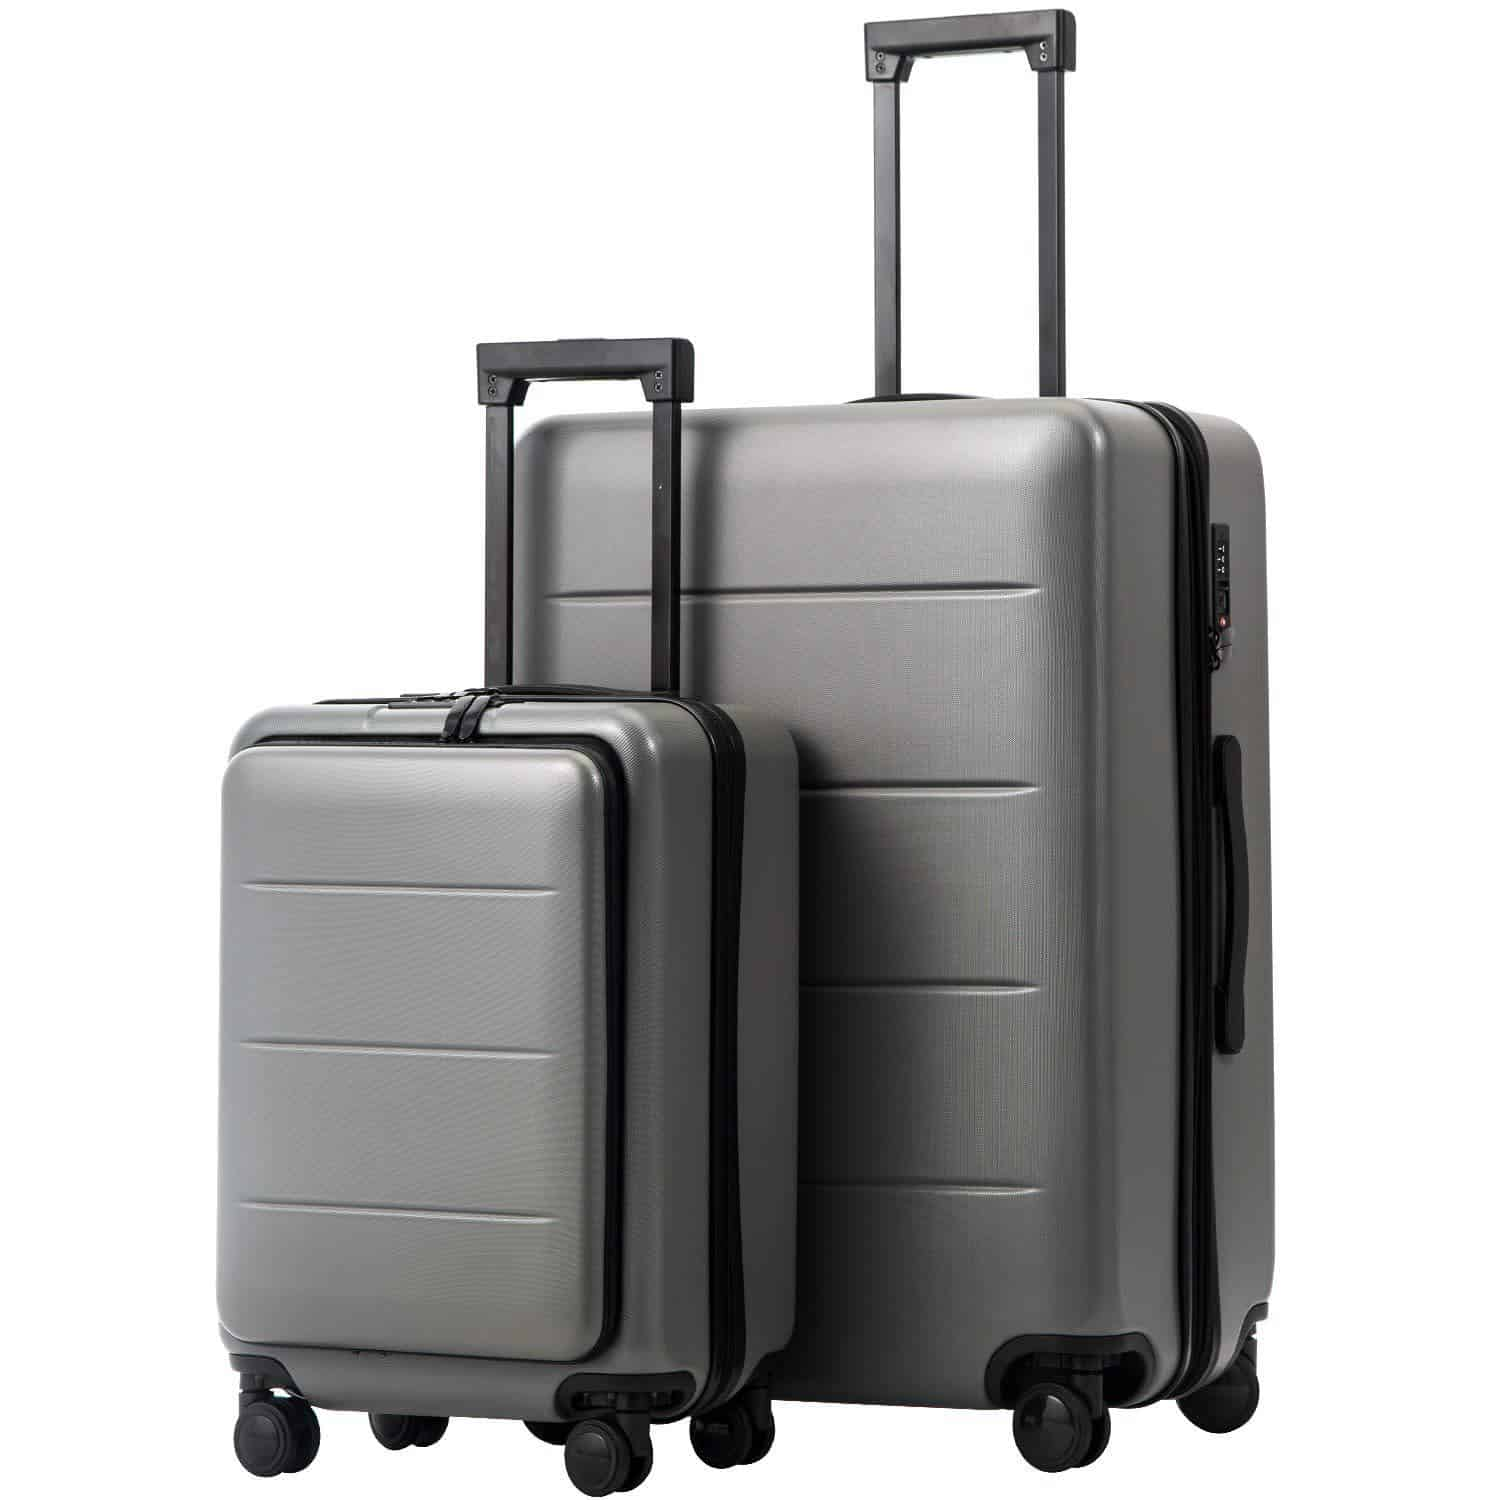 luggage set gift for parents and in-laws